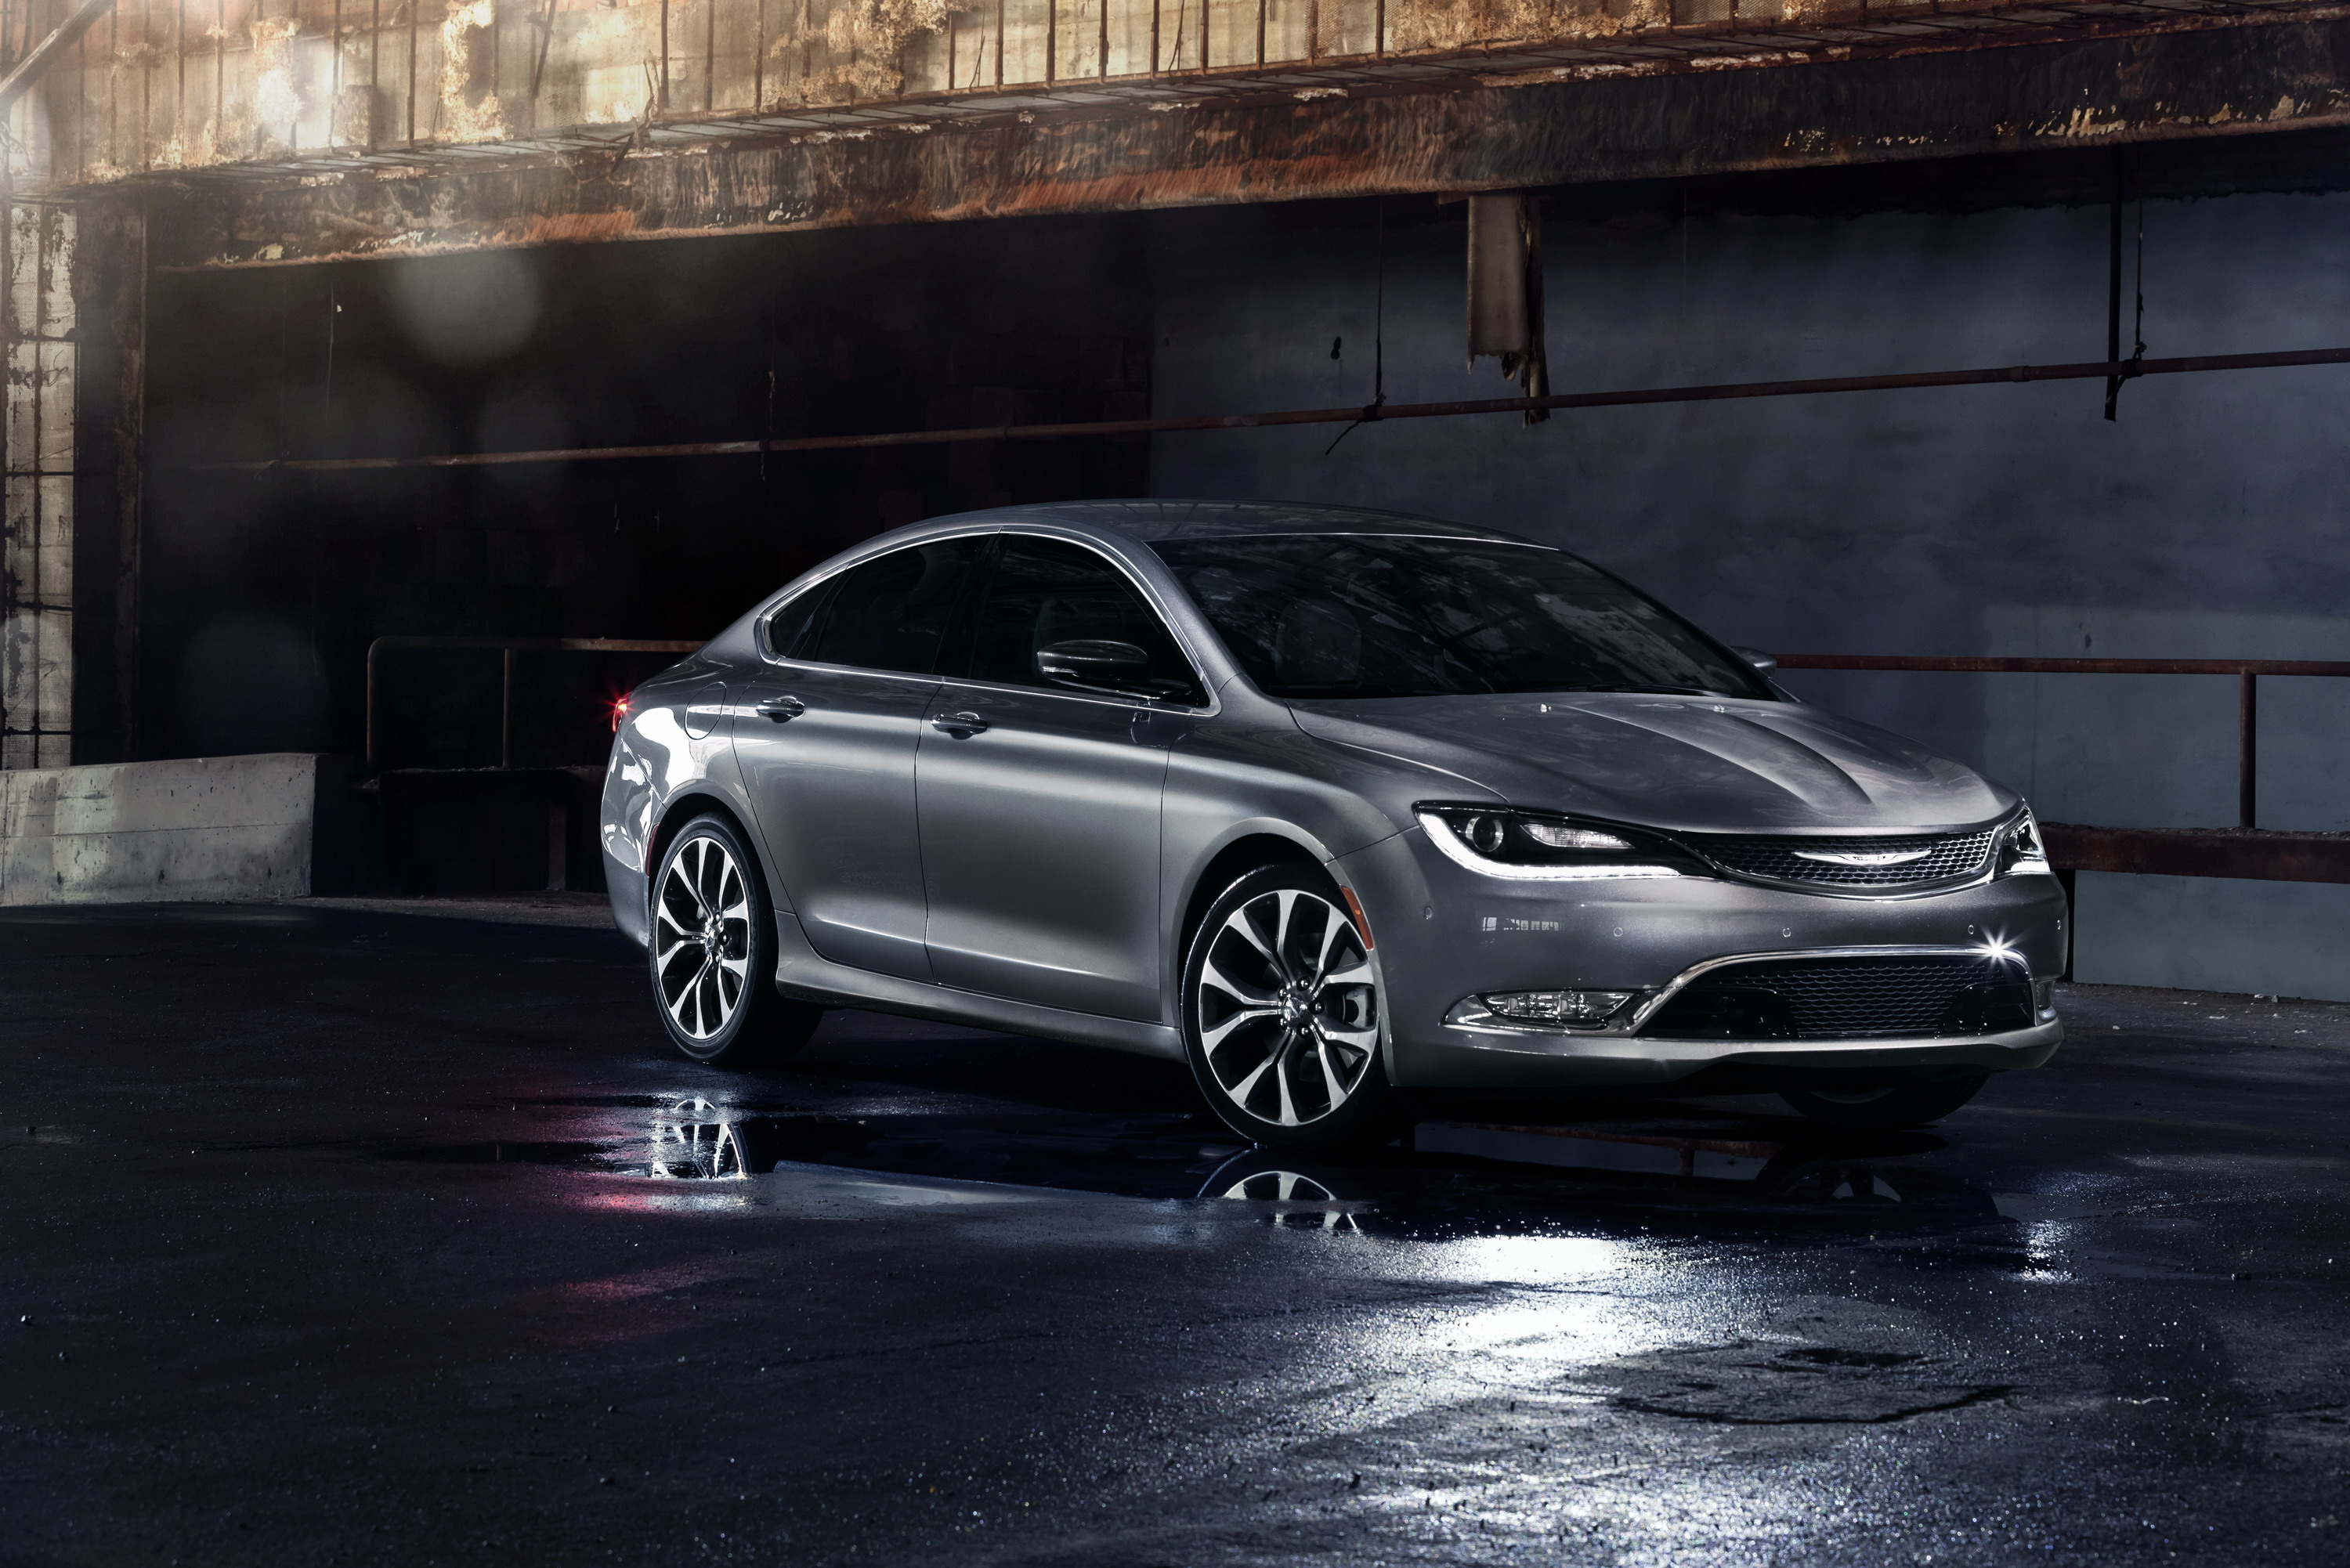 2015 Chrysler 200 Review Top Speed